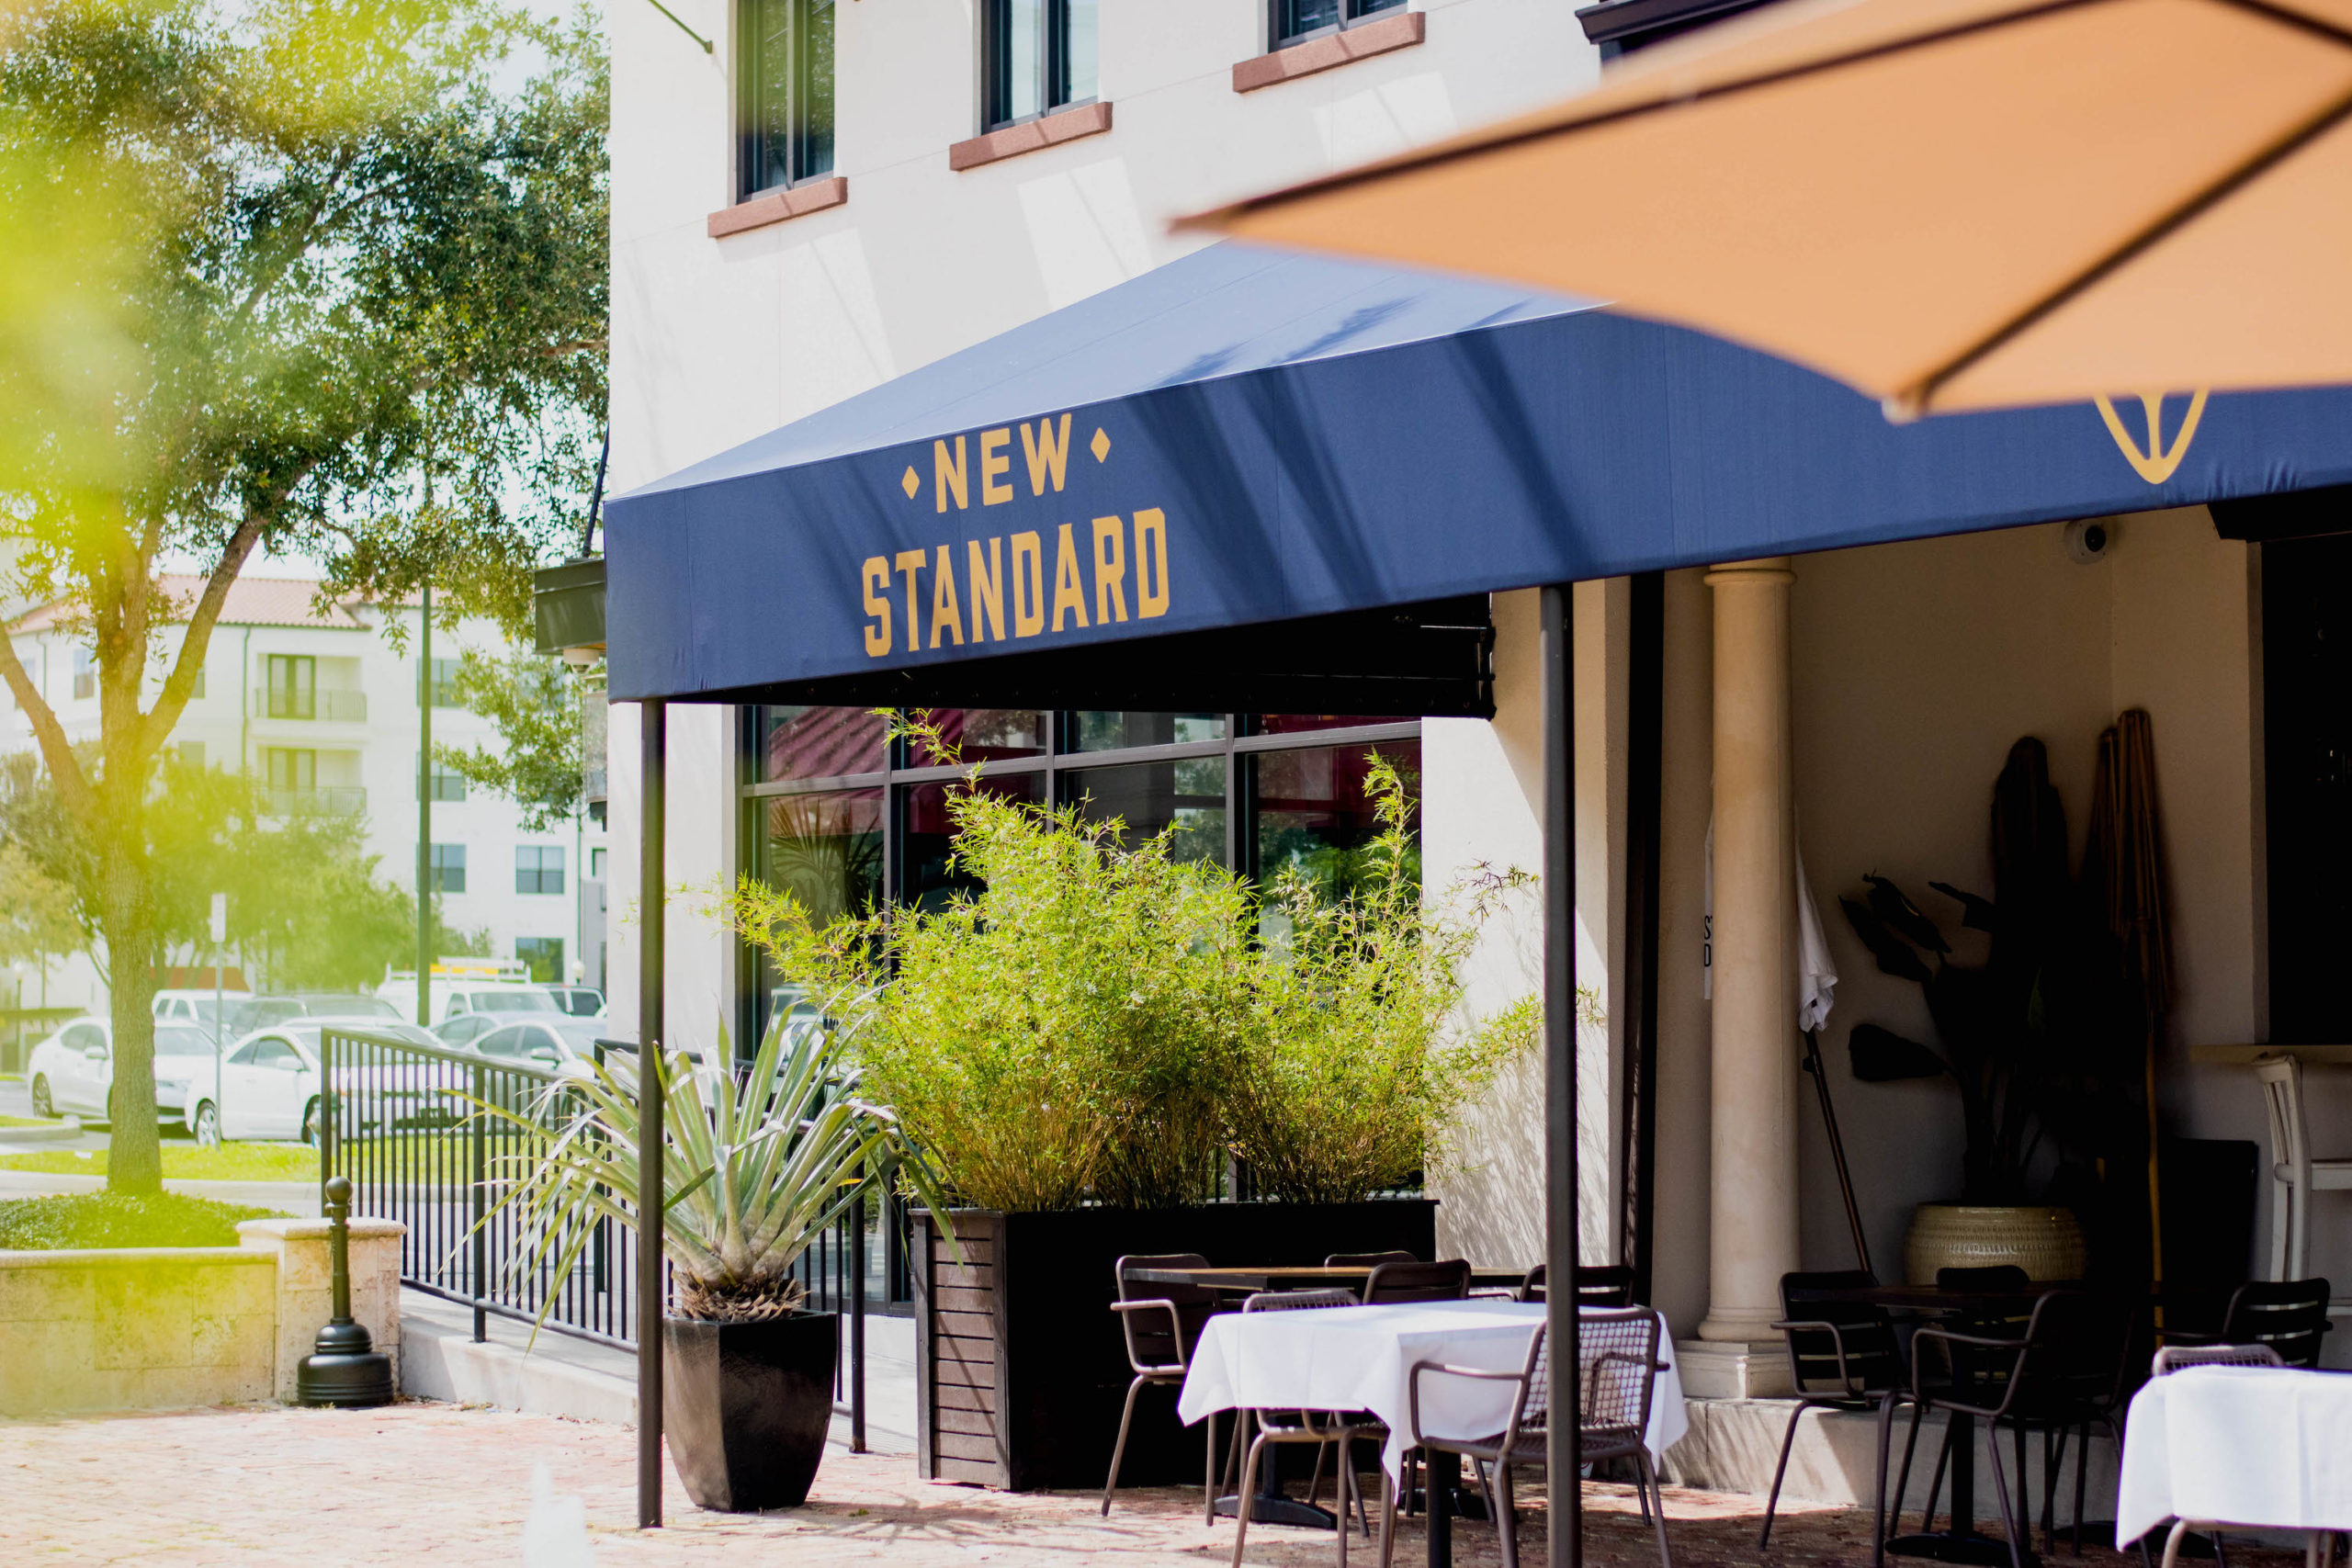 The New Standard restaurant in Winter Park, Fla.